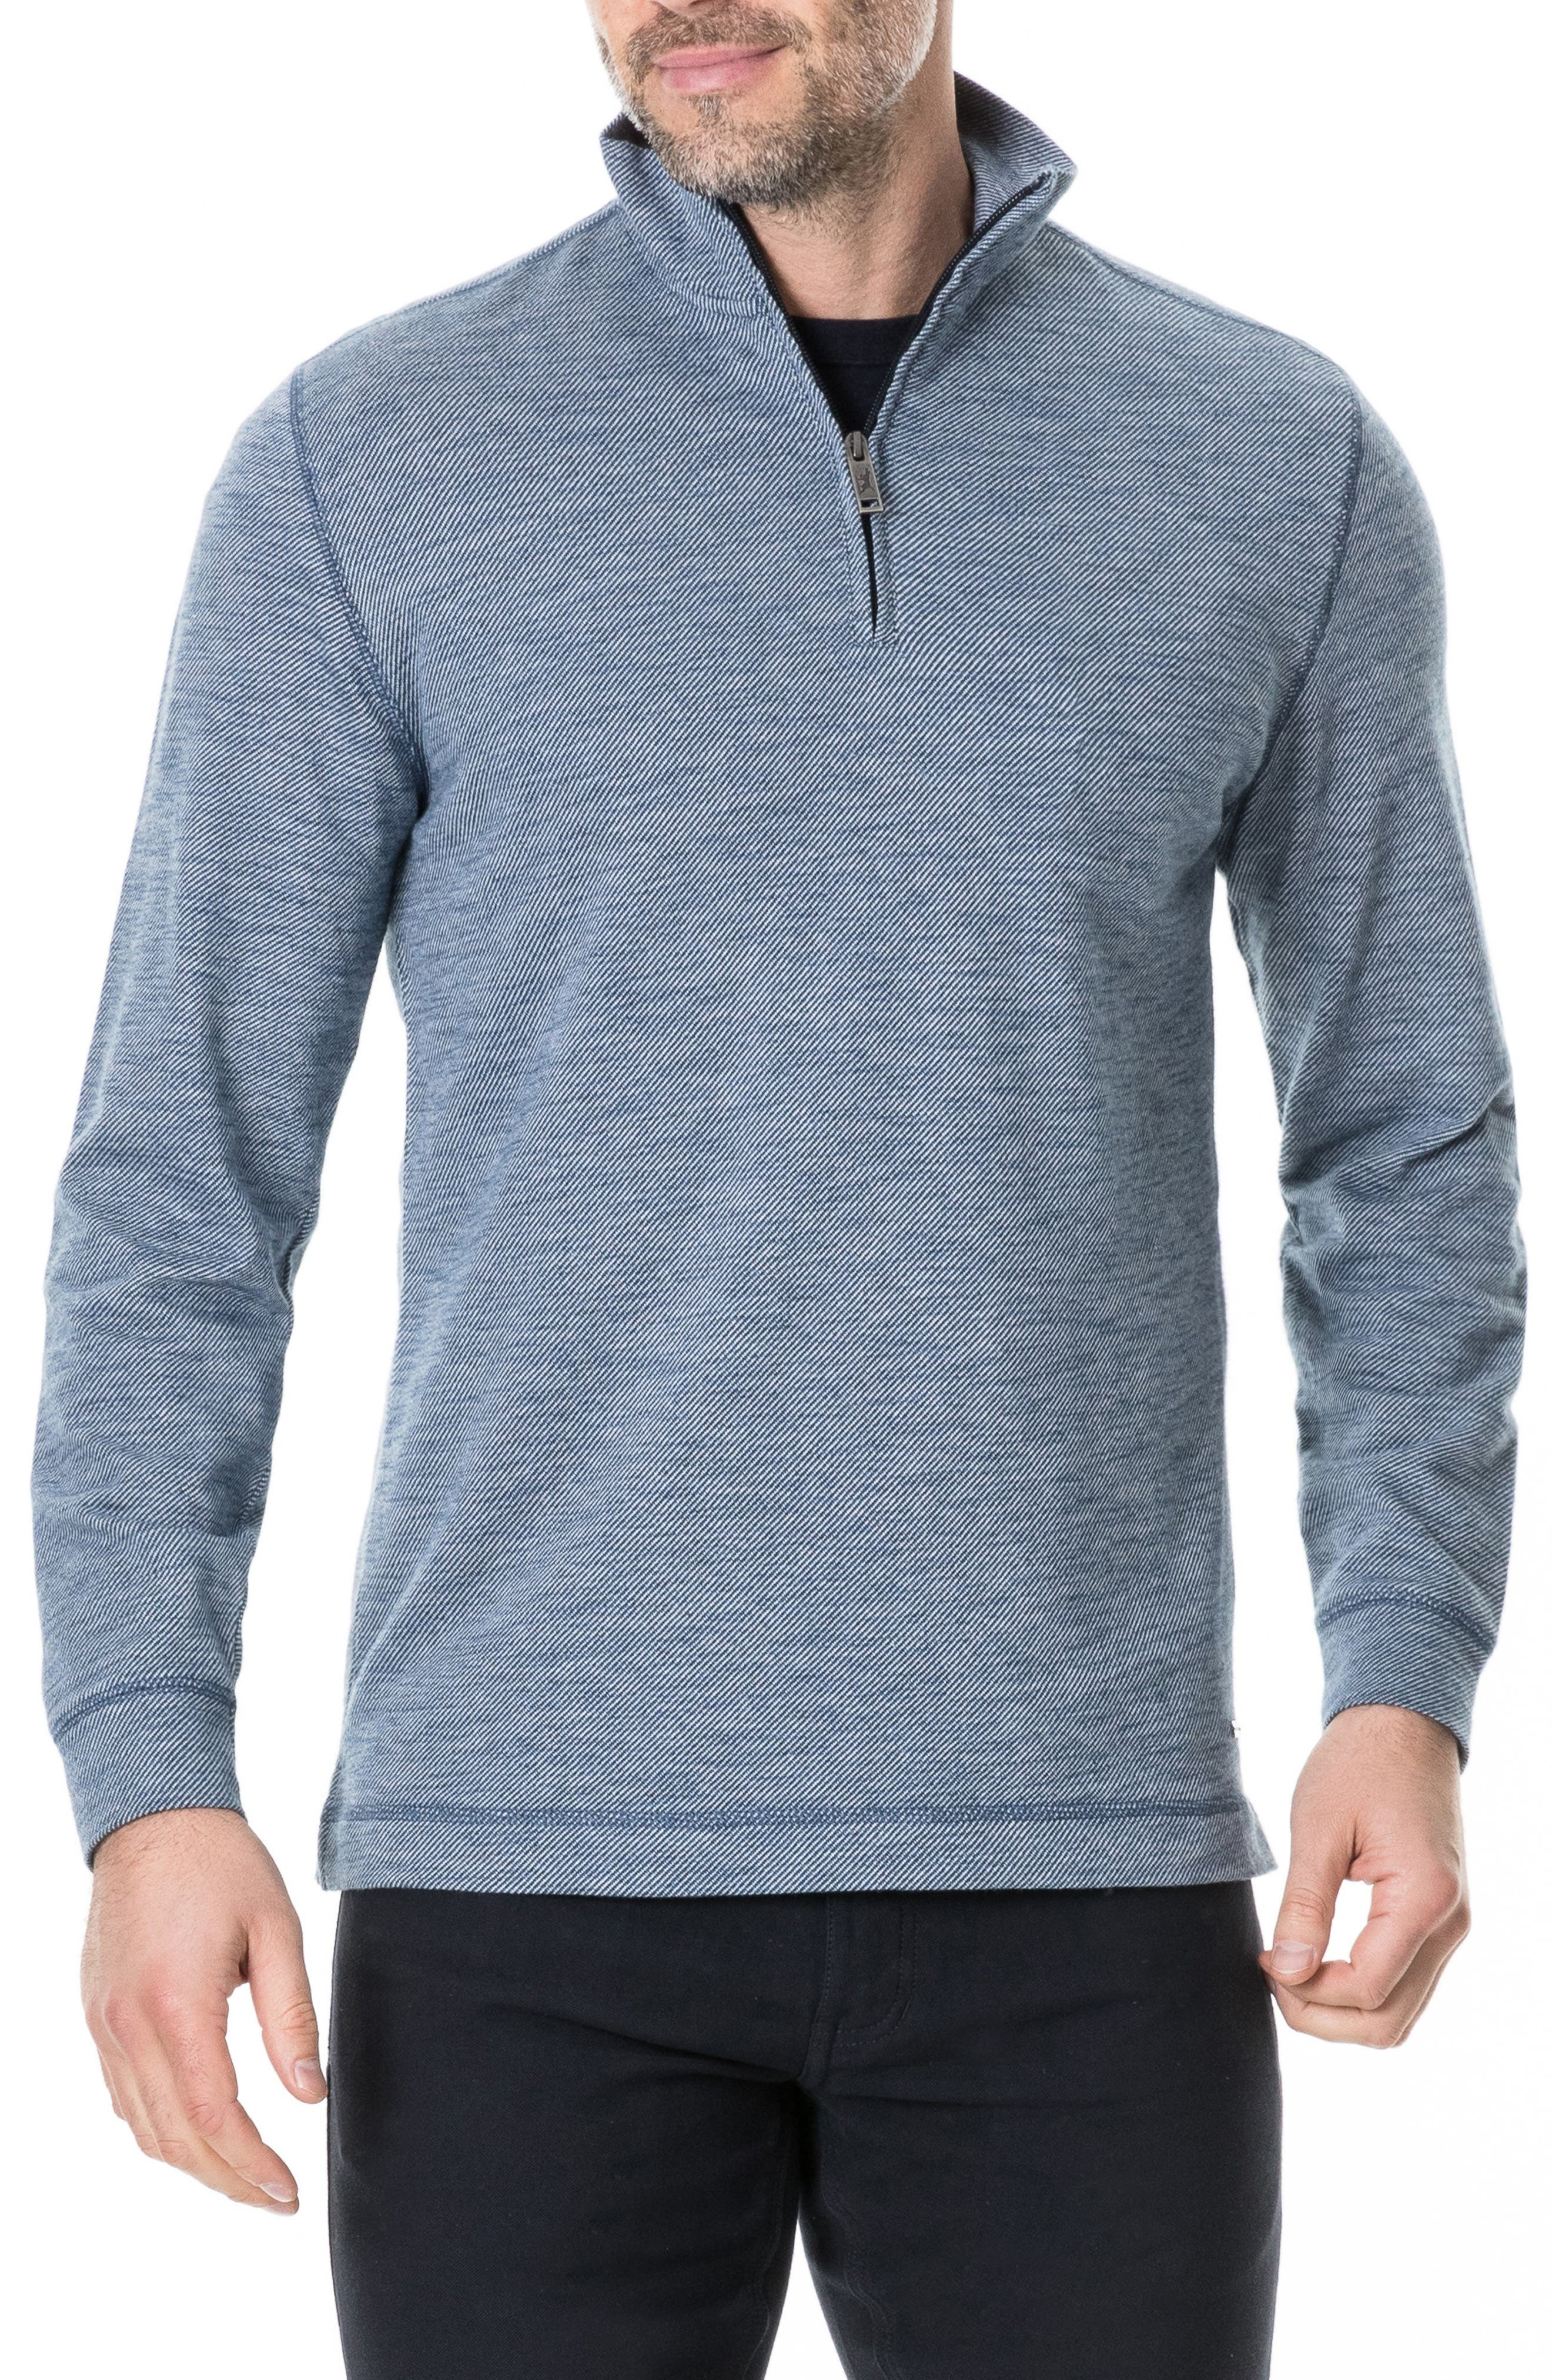 RODD & GUNN Anvil Island Regular Fit Pullover, Main, color, DENIM BLUE